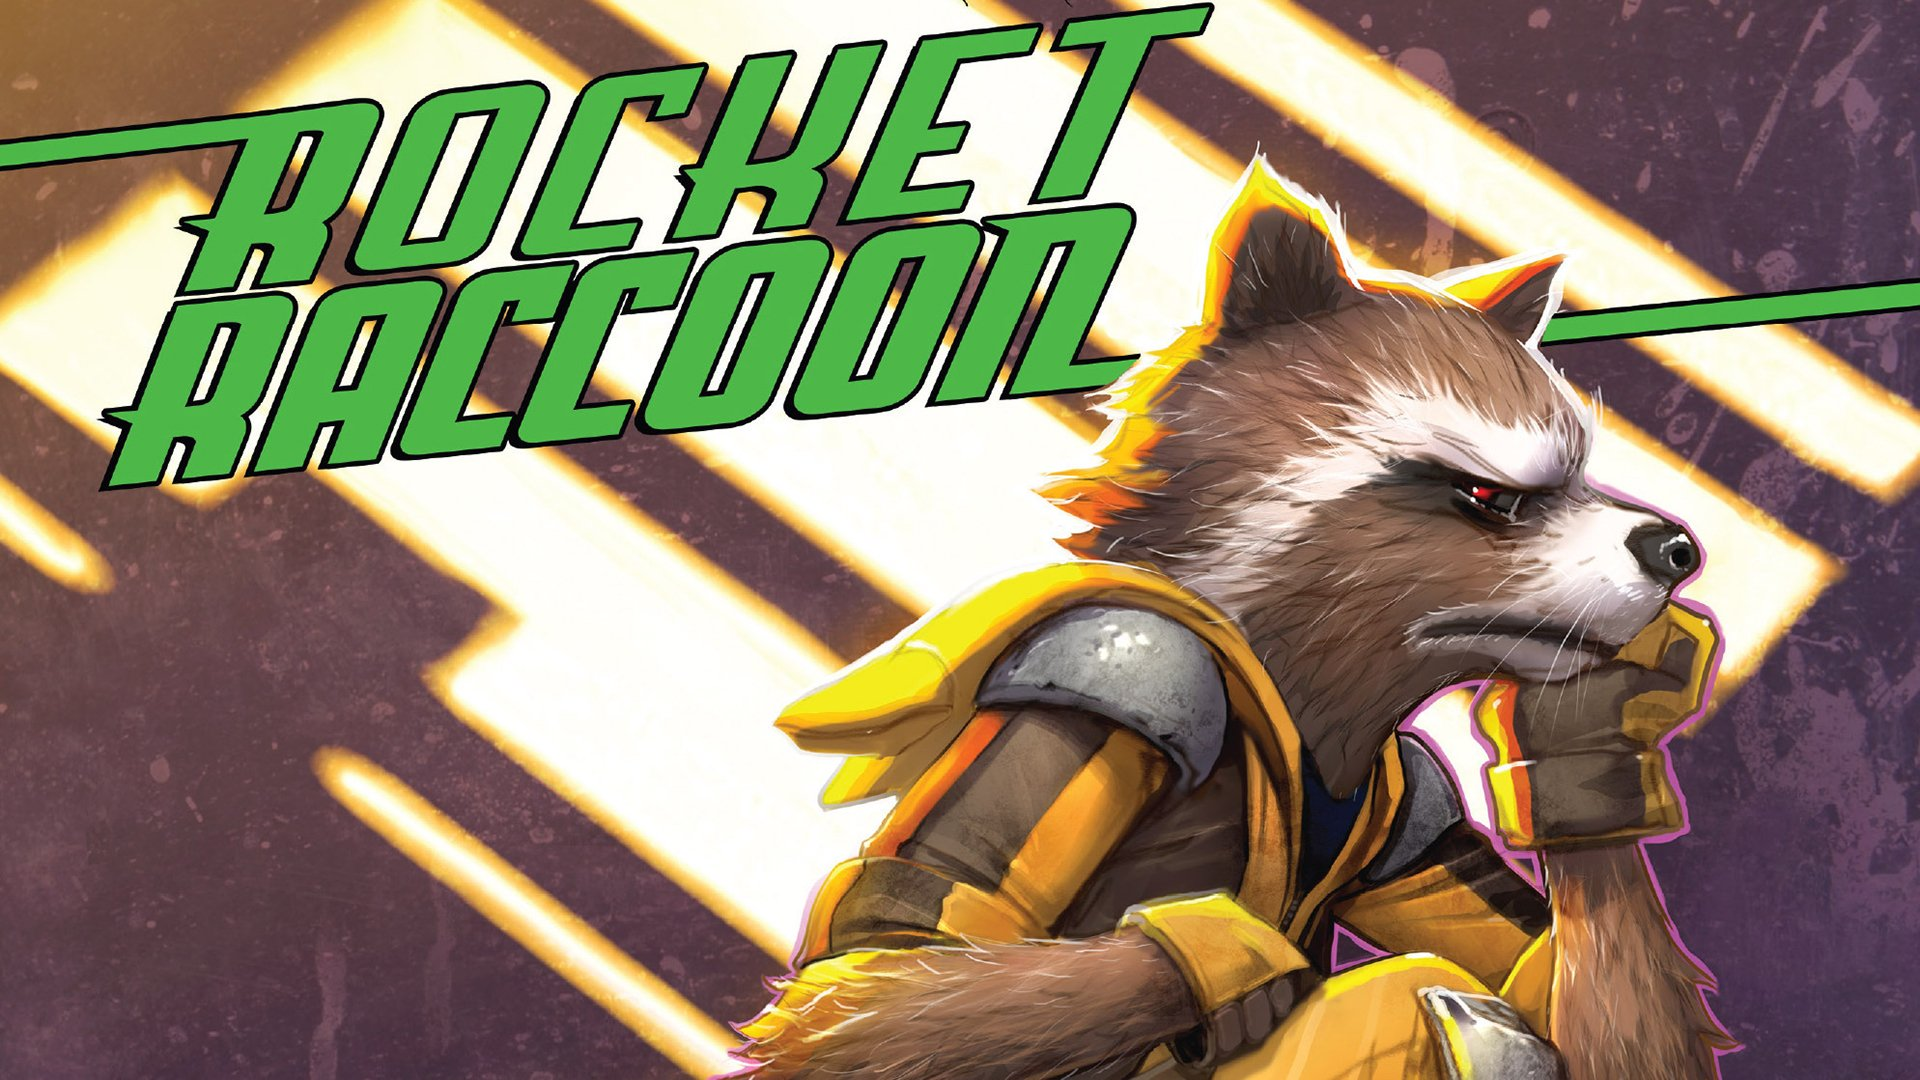 Rocket Raccoon HD Wallpaper | Background Image | 1920x1080